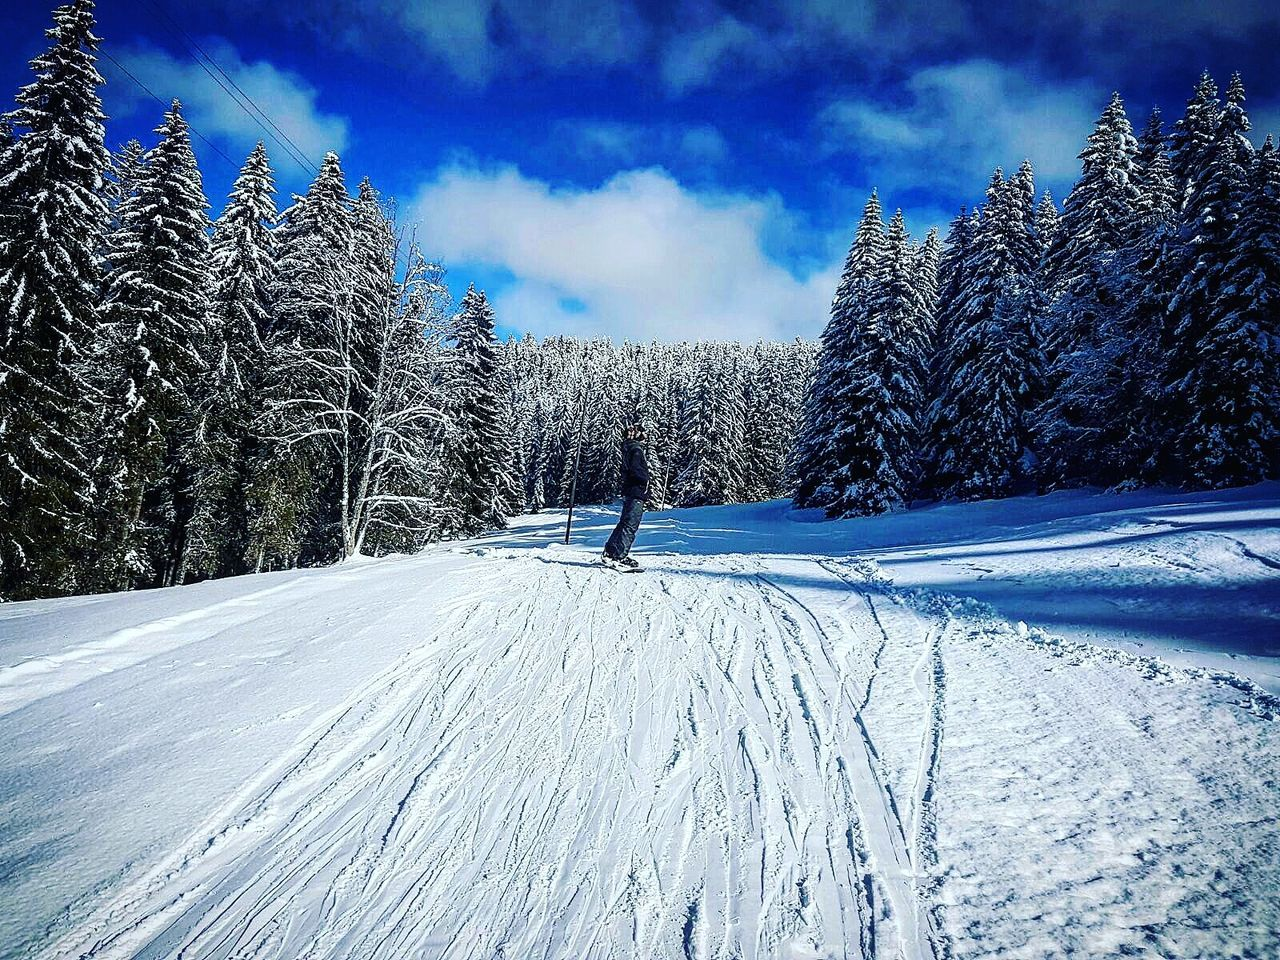 Cloud - Sky Snow Sky Outdoors No People Cold Temperature Landscape Nature Beauty In Nature Day Mountain Scenics Tranquility Naturelovers Snowboard